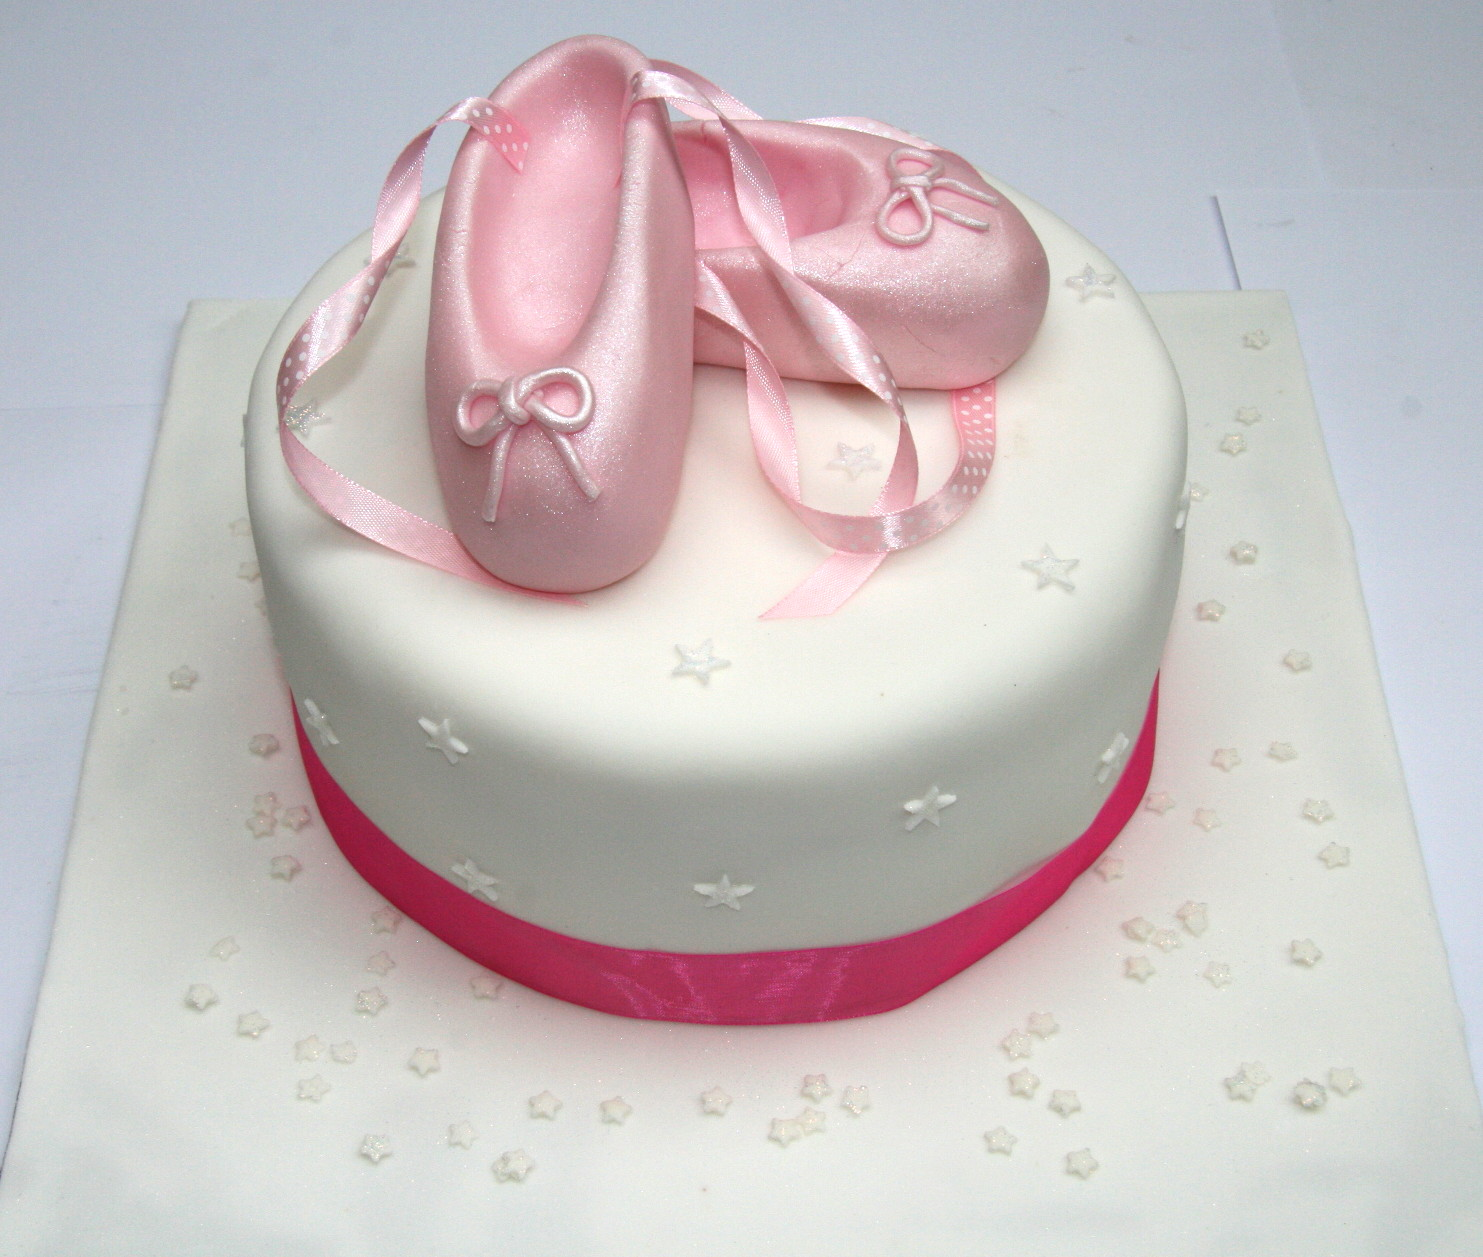 Cake Decorations Ballet Shoes : Ballet Shoes Cake Etoile